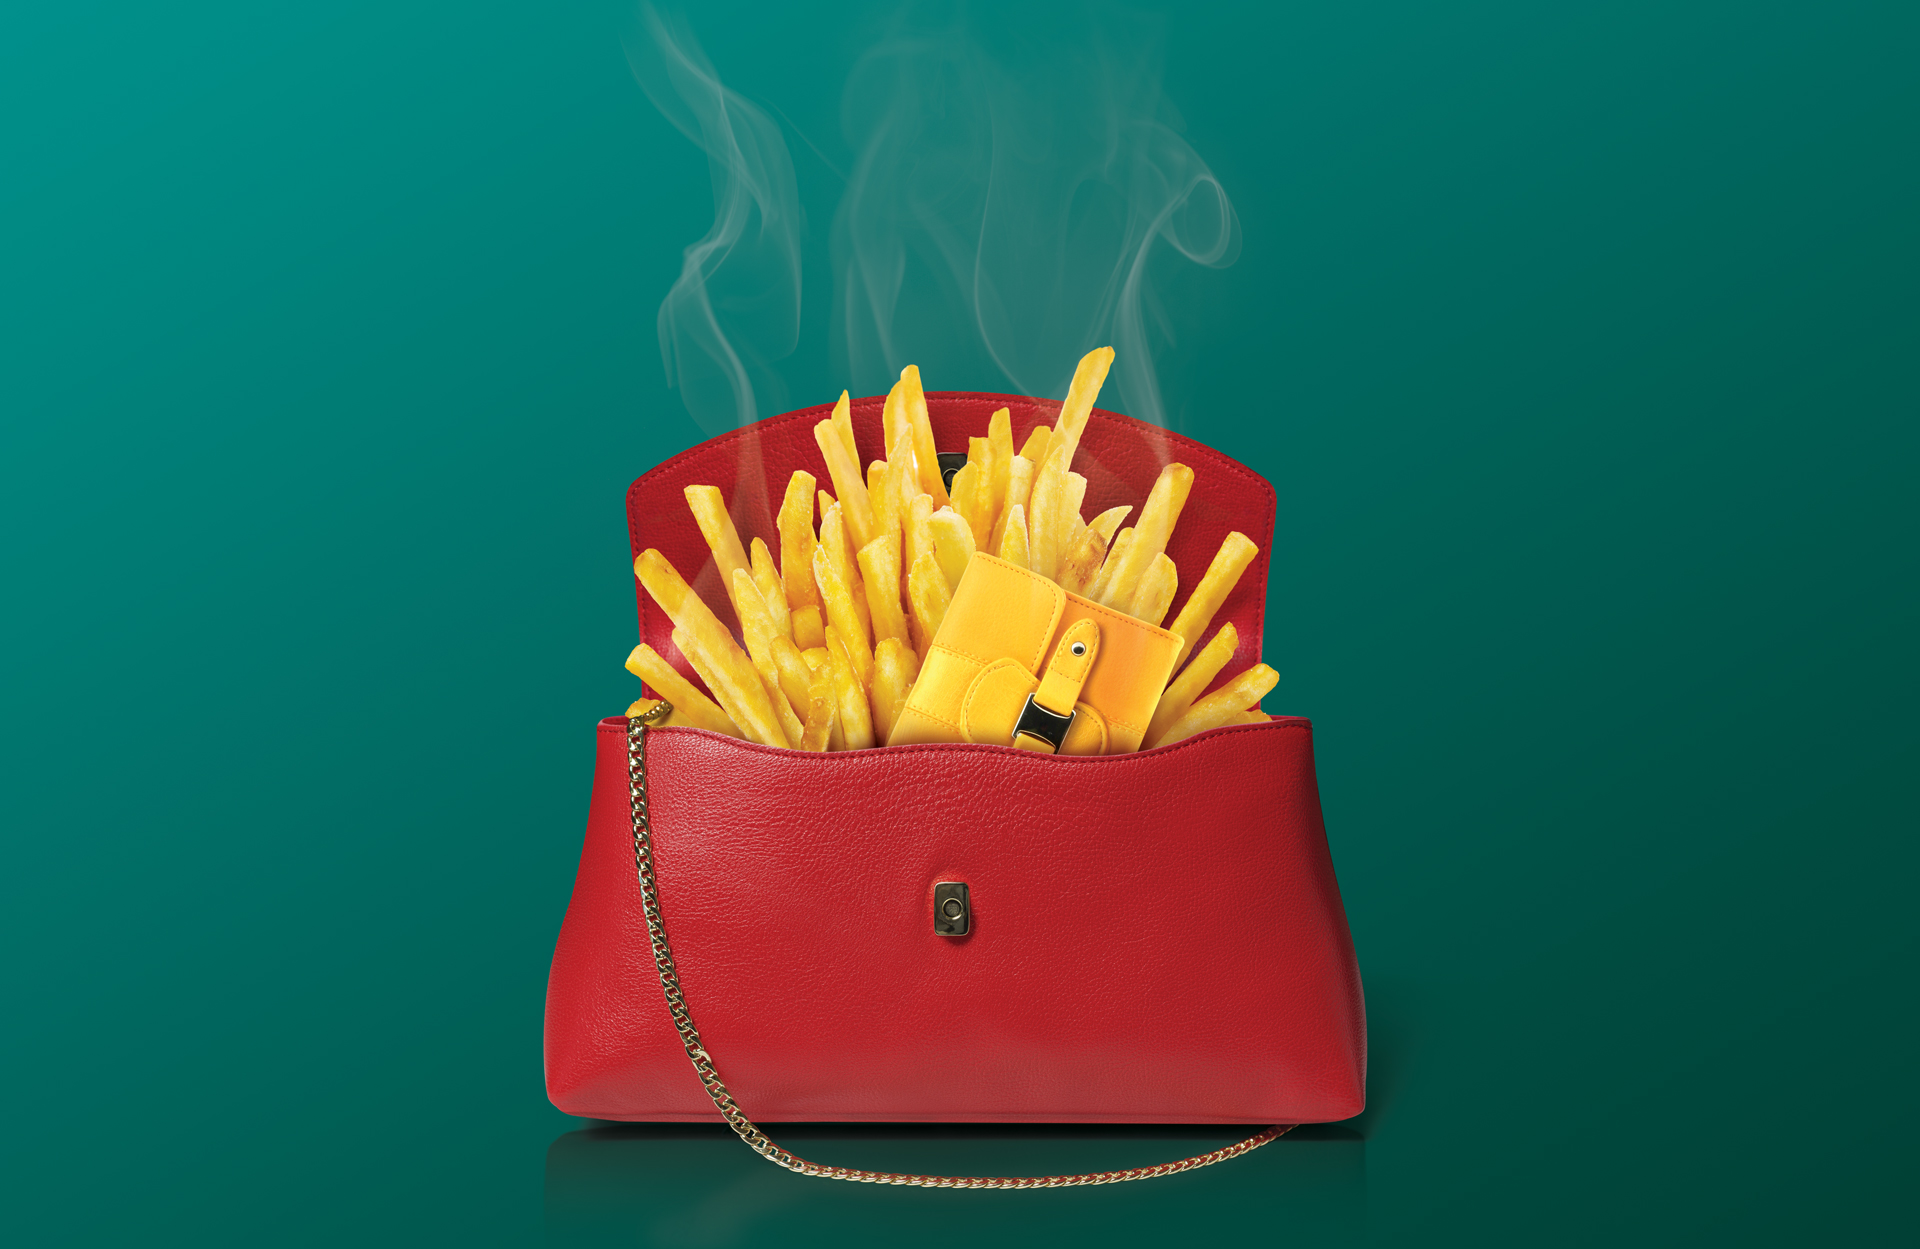 ECC-Spring-Campaign-posters-clutch-&-fries-2.jpg